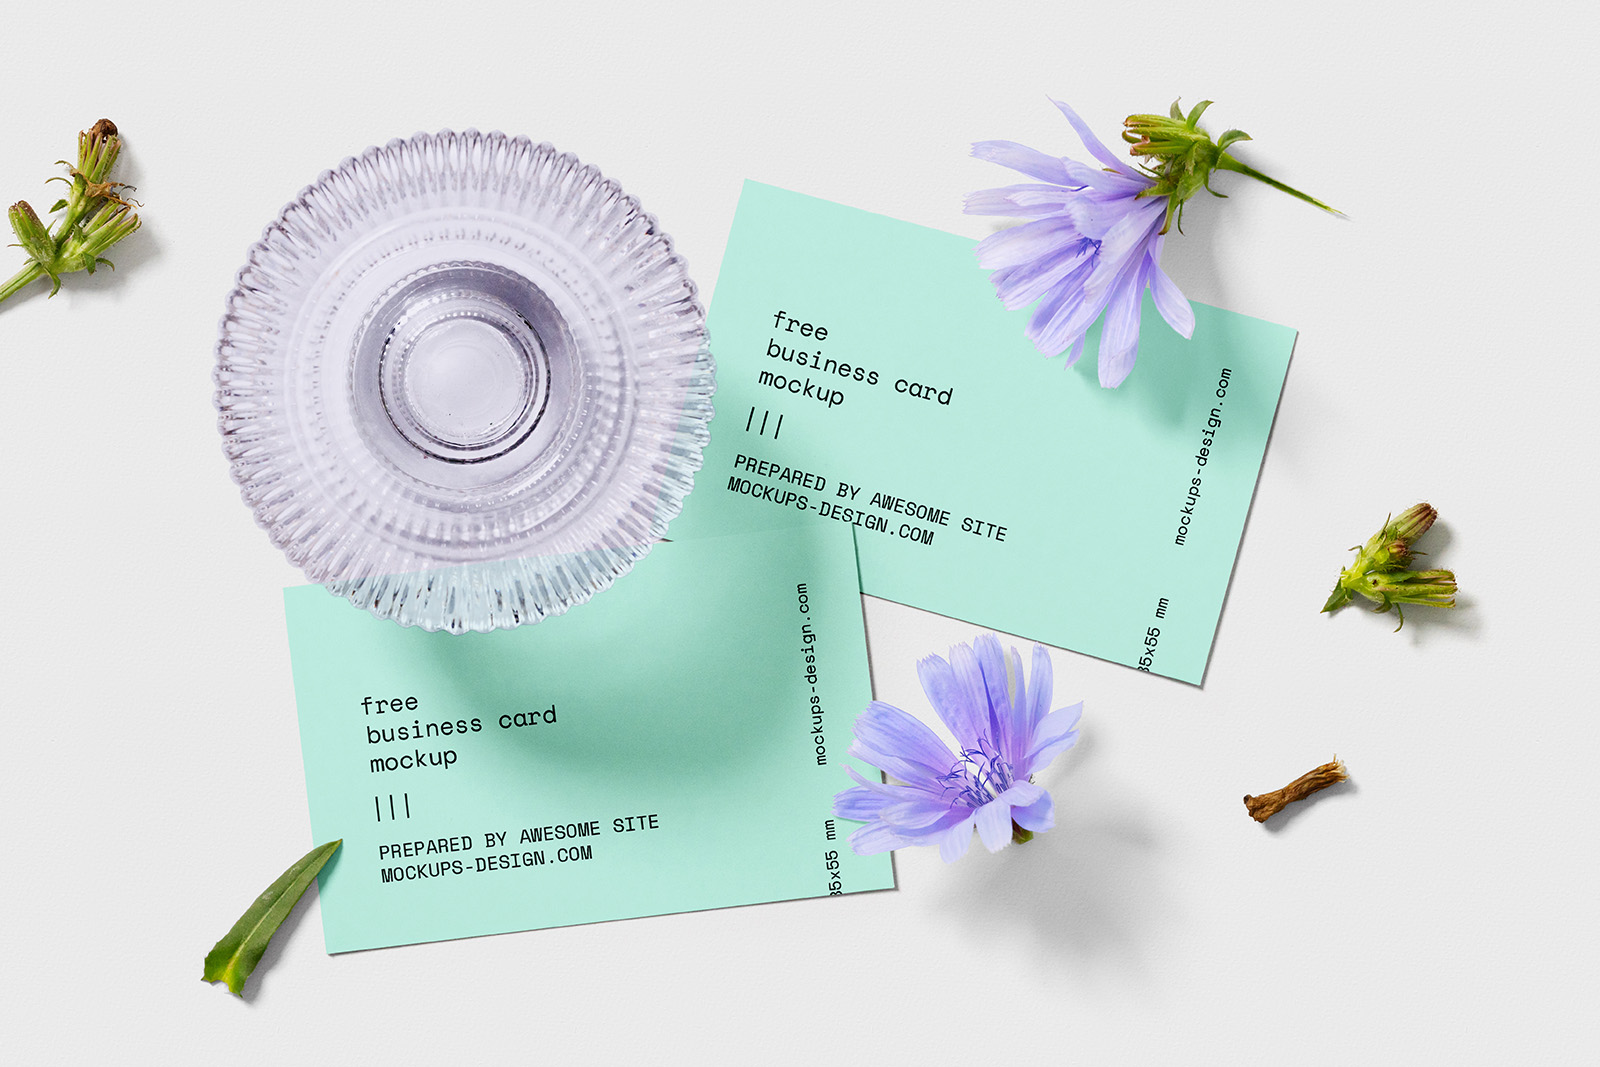 Business card with flowers mockup